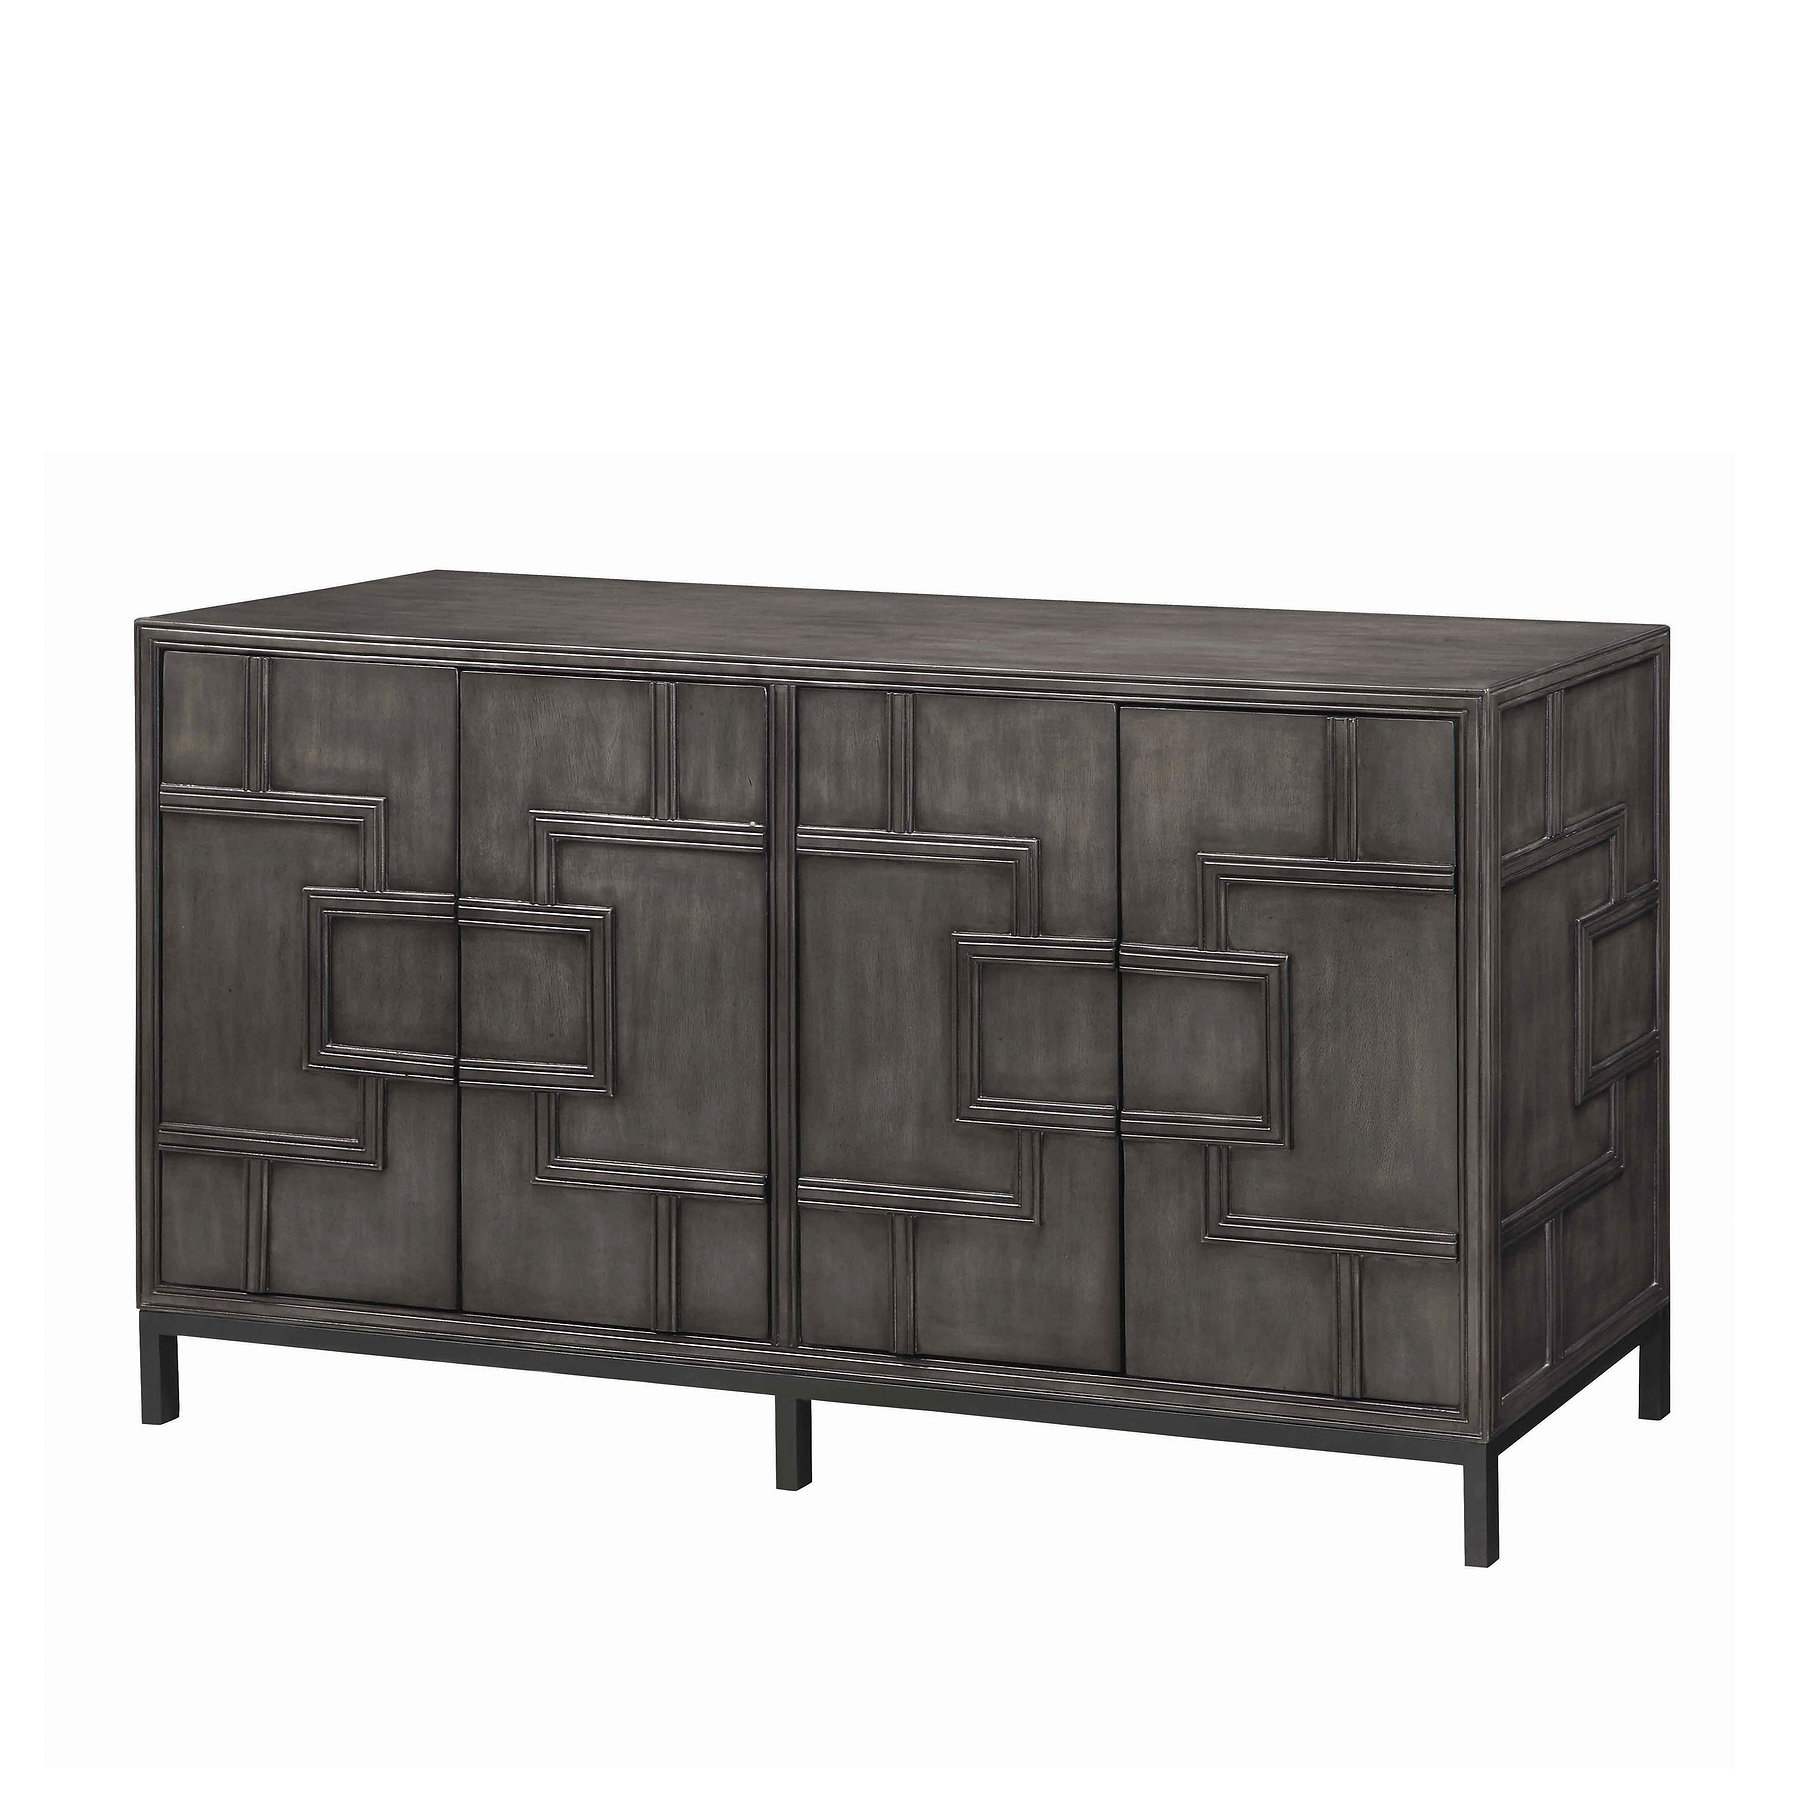 13613 Credenza With Geometric Shapes Credenzas (View 7 of 20)